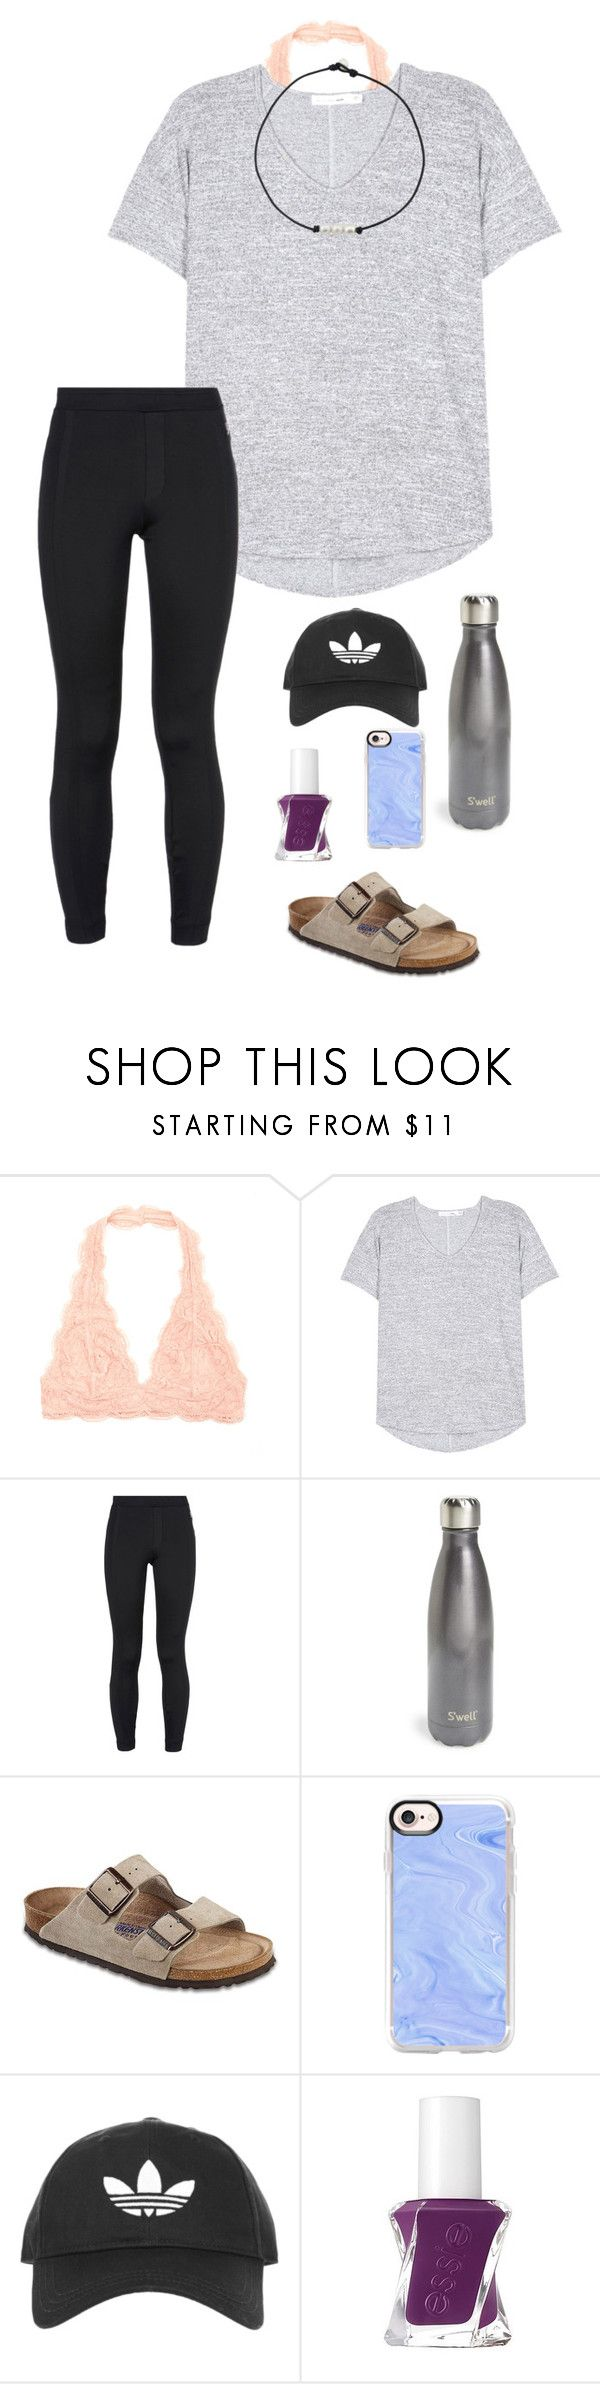 """""""It's been raining the past week"""" by eadurbala08 ❤ liked on Polyvore featuring rag & bone, NIKE, S'well, Birkenstock, Casetify, Topshop and Essie"""